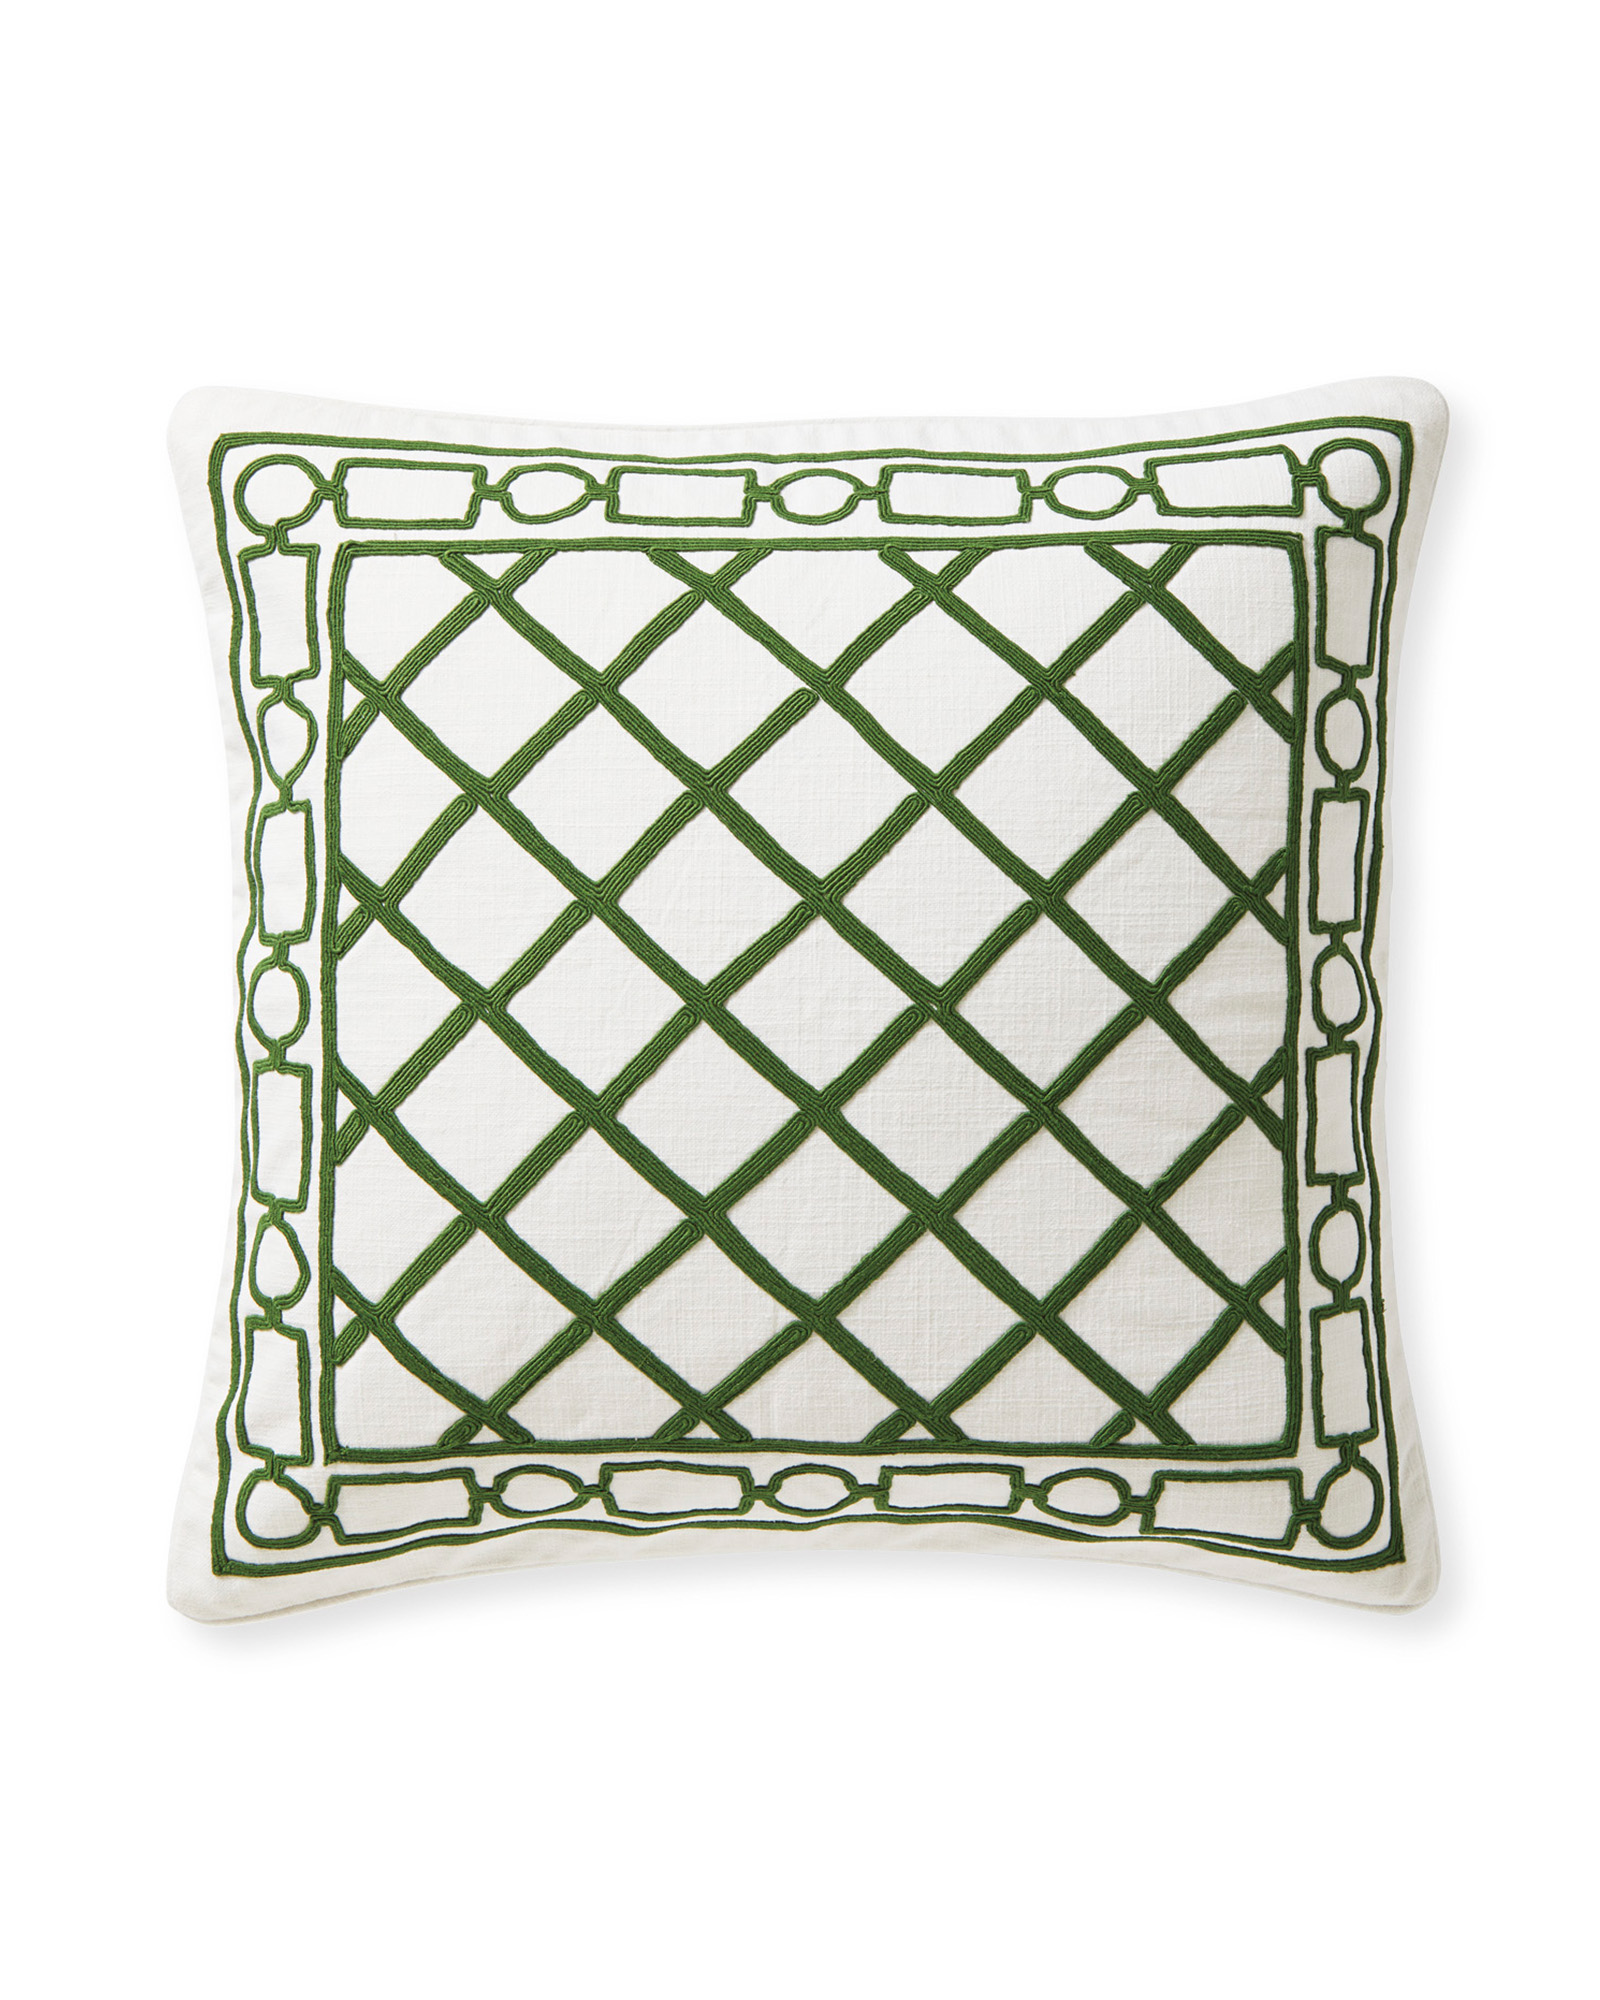 Arcata Pillow Cover, Moss